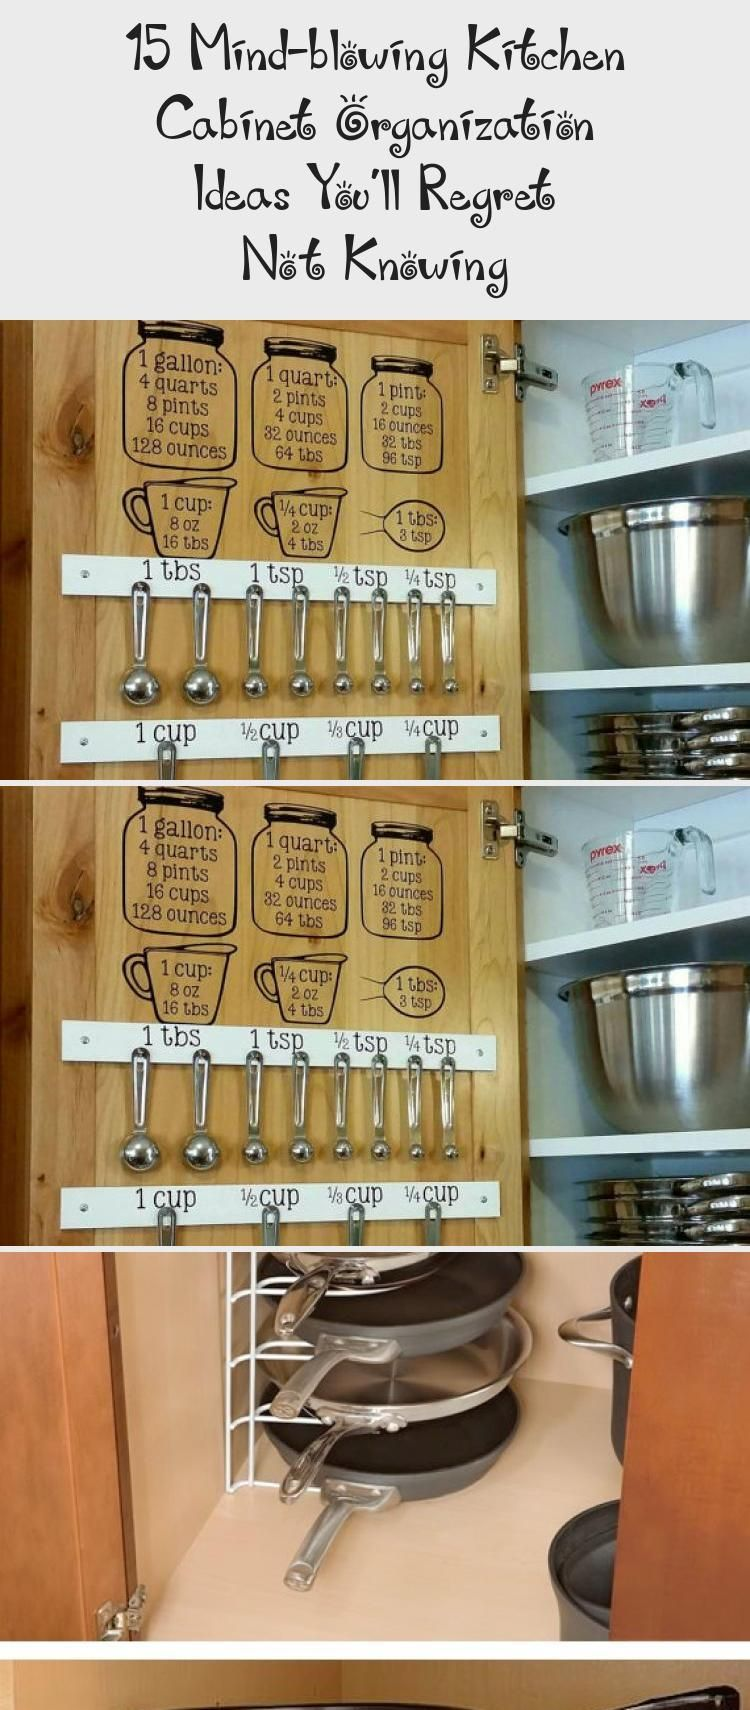 15 Mind Blowing Kitchen Cabinet Organization Ideas You Ll Regret Not Knowing Information Decor In 2020 Kitchen Cabinet Organization Cabinet Organization Cabinets Organization